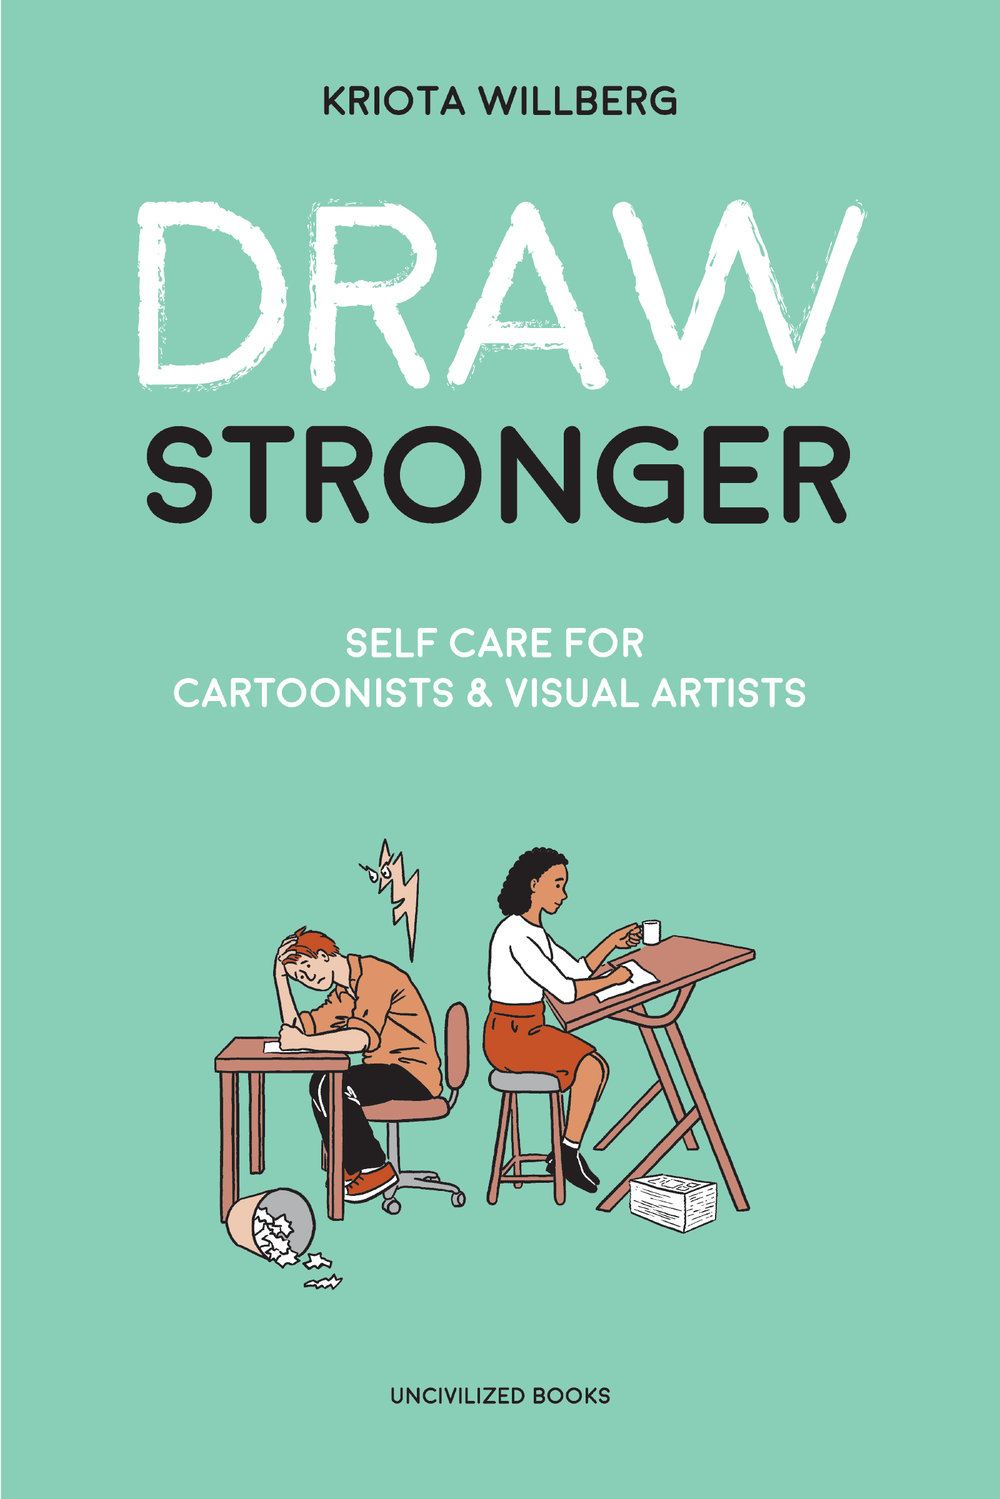 """ Draw Stronger "" is a new book that helps artists, writers and others methods for self-care."